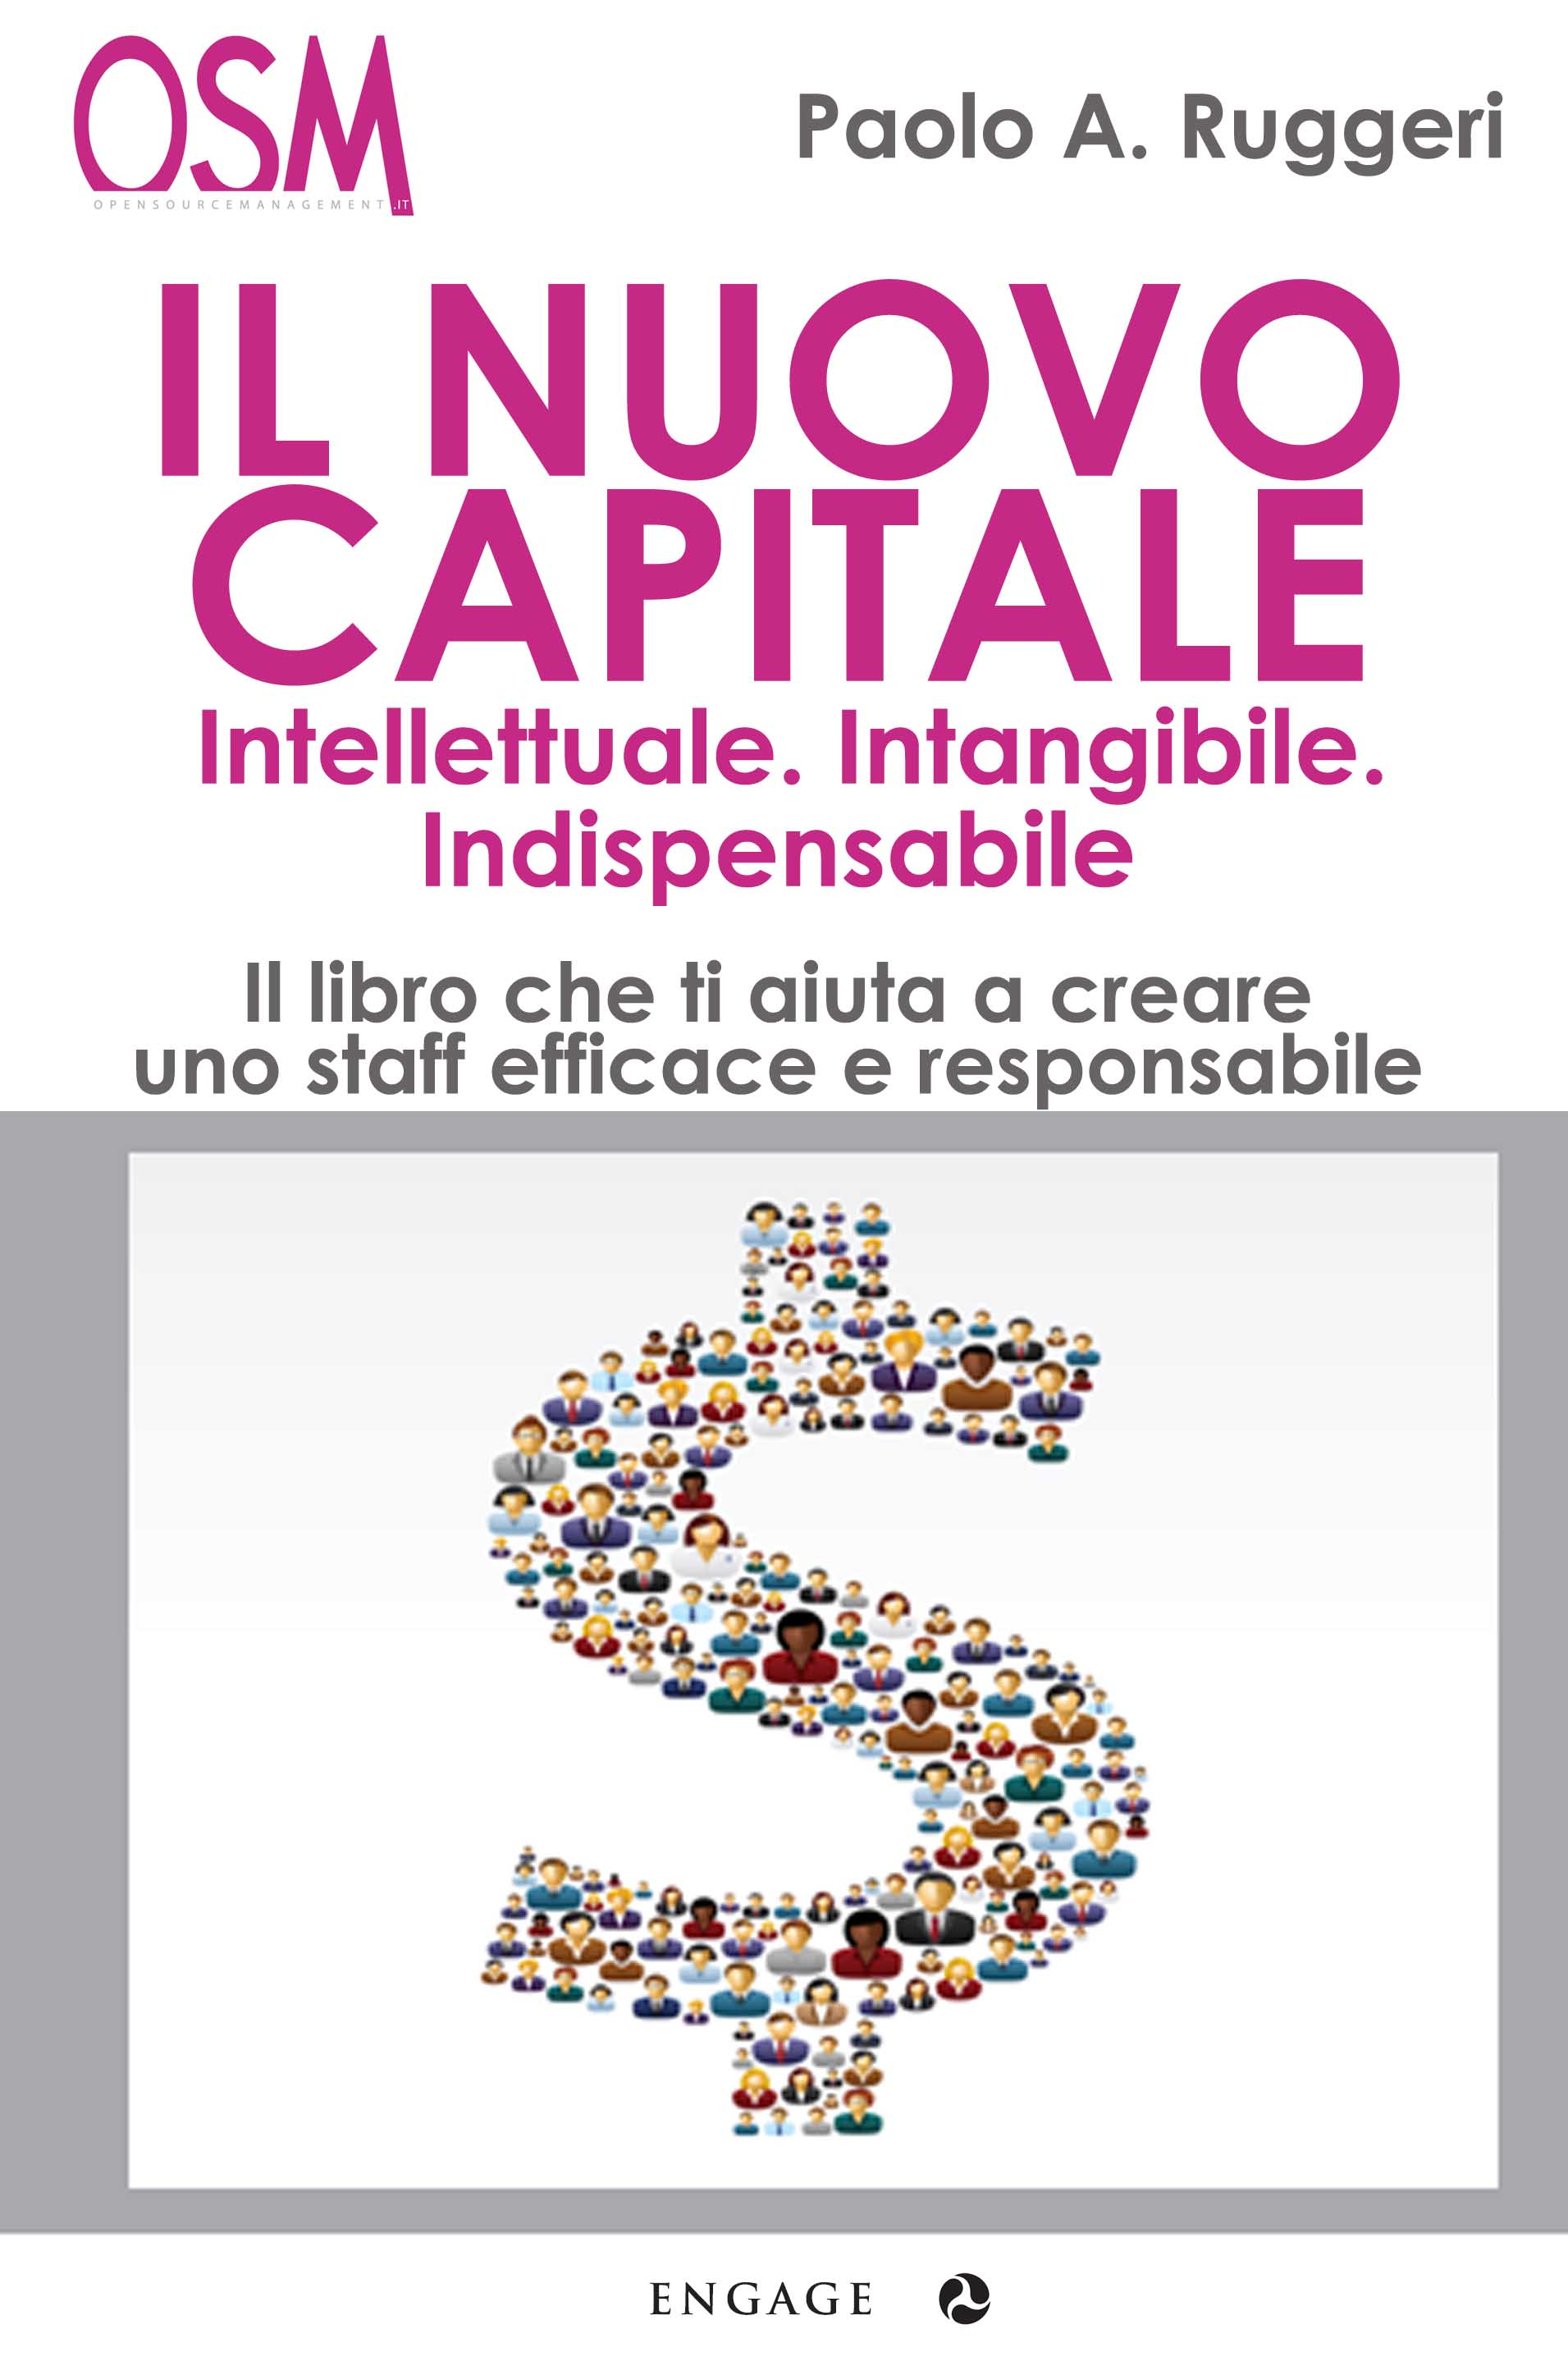 immagine  IL NUOVO CAPITALE  ebook su iTunes e Amazon